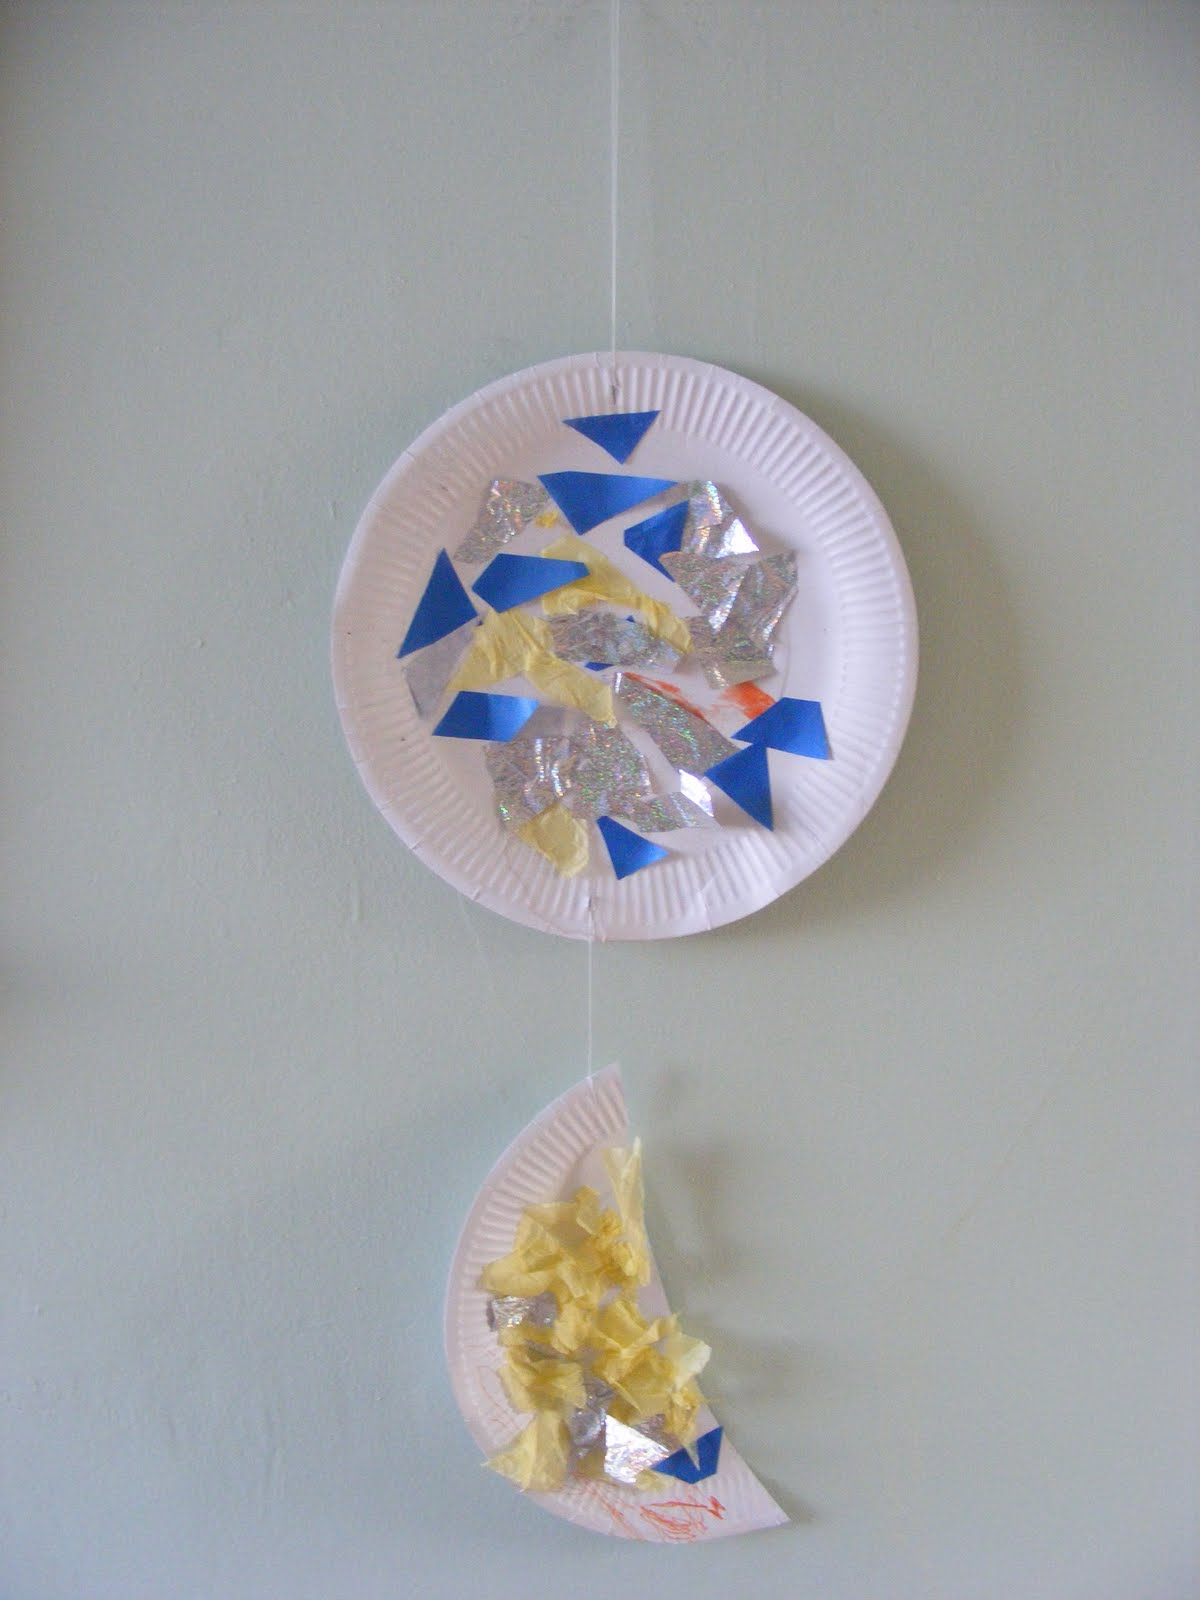 Adventures @ Play Paper Plate Activities #1 - Planet u0026 Moon Wall Hanging & Adventures @ Play: Paper Plate Activities #1 - Planet u0026 Moon Wall ...